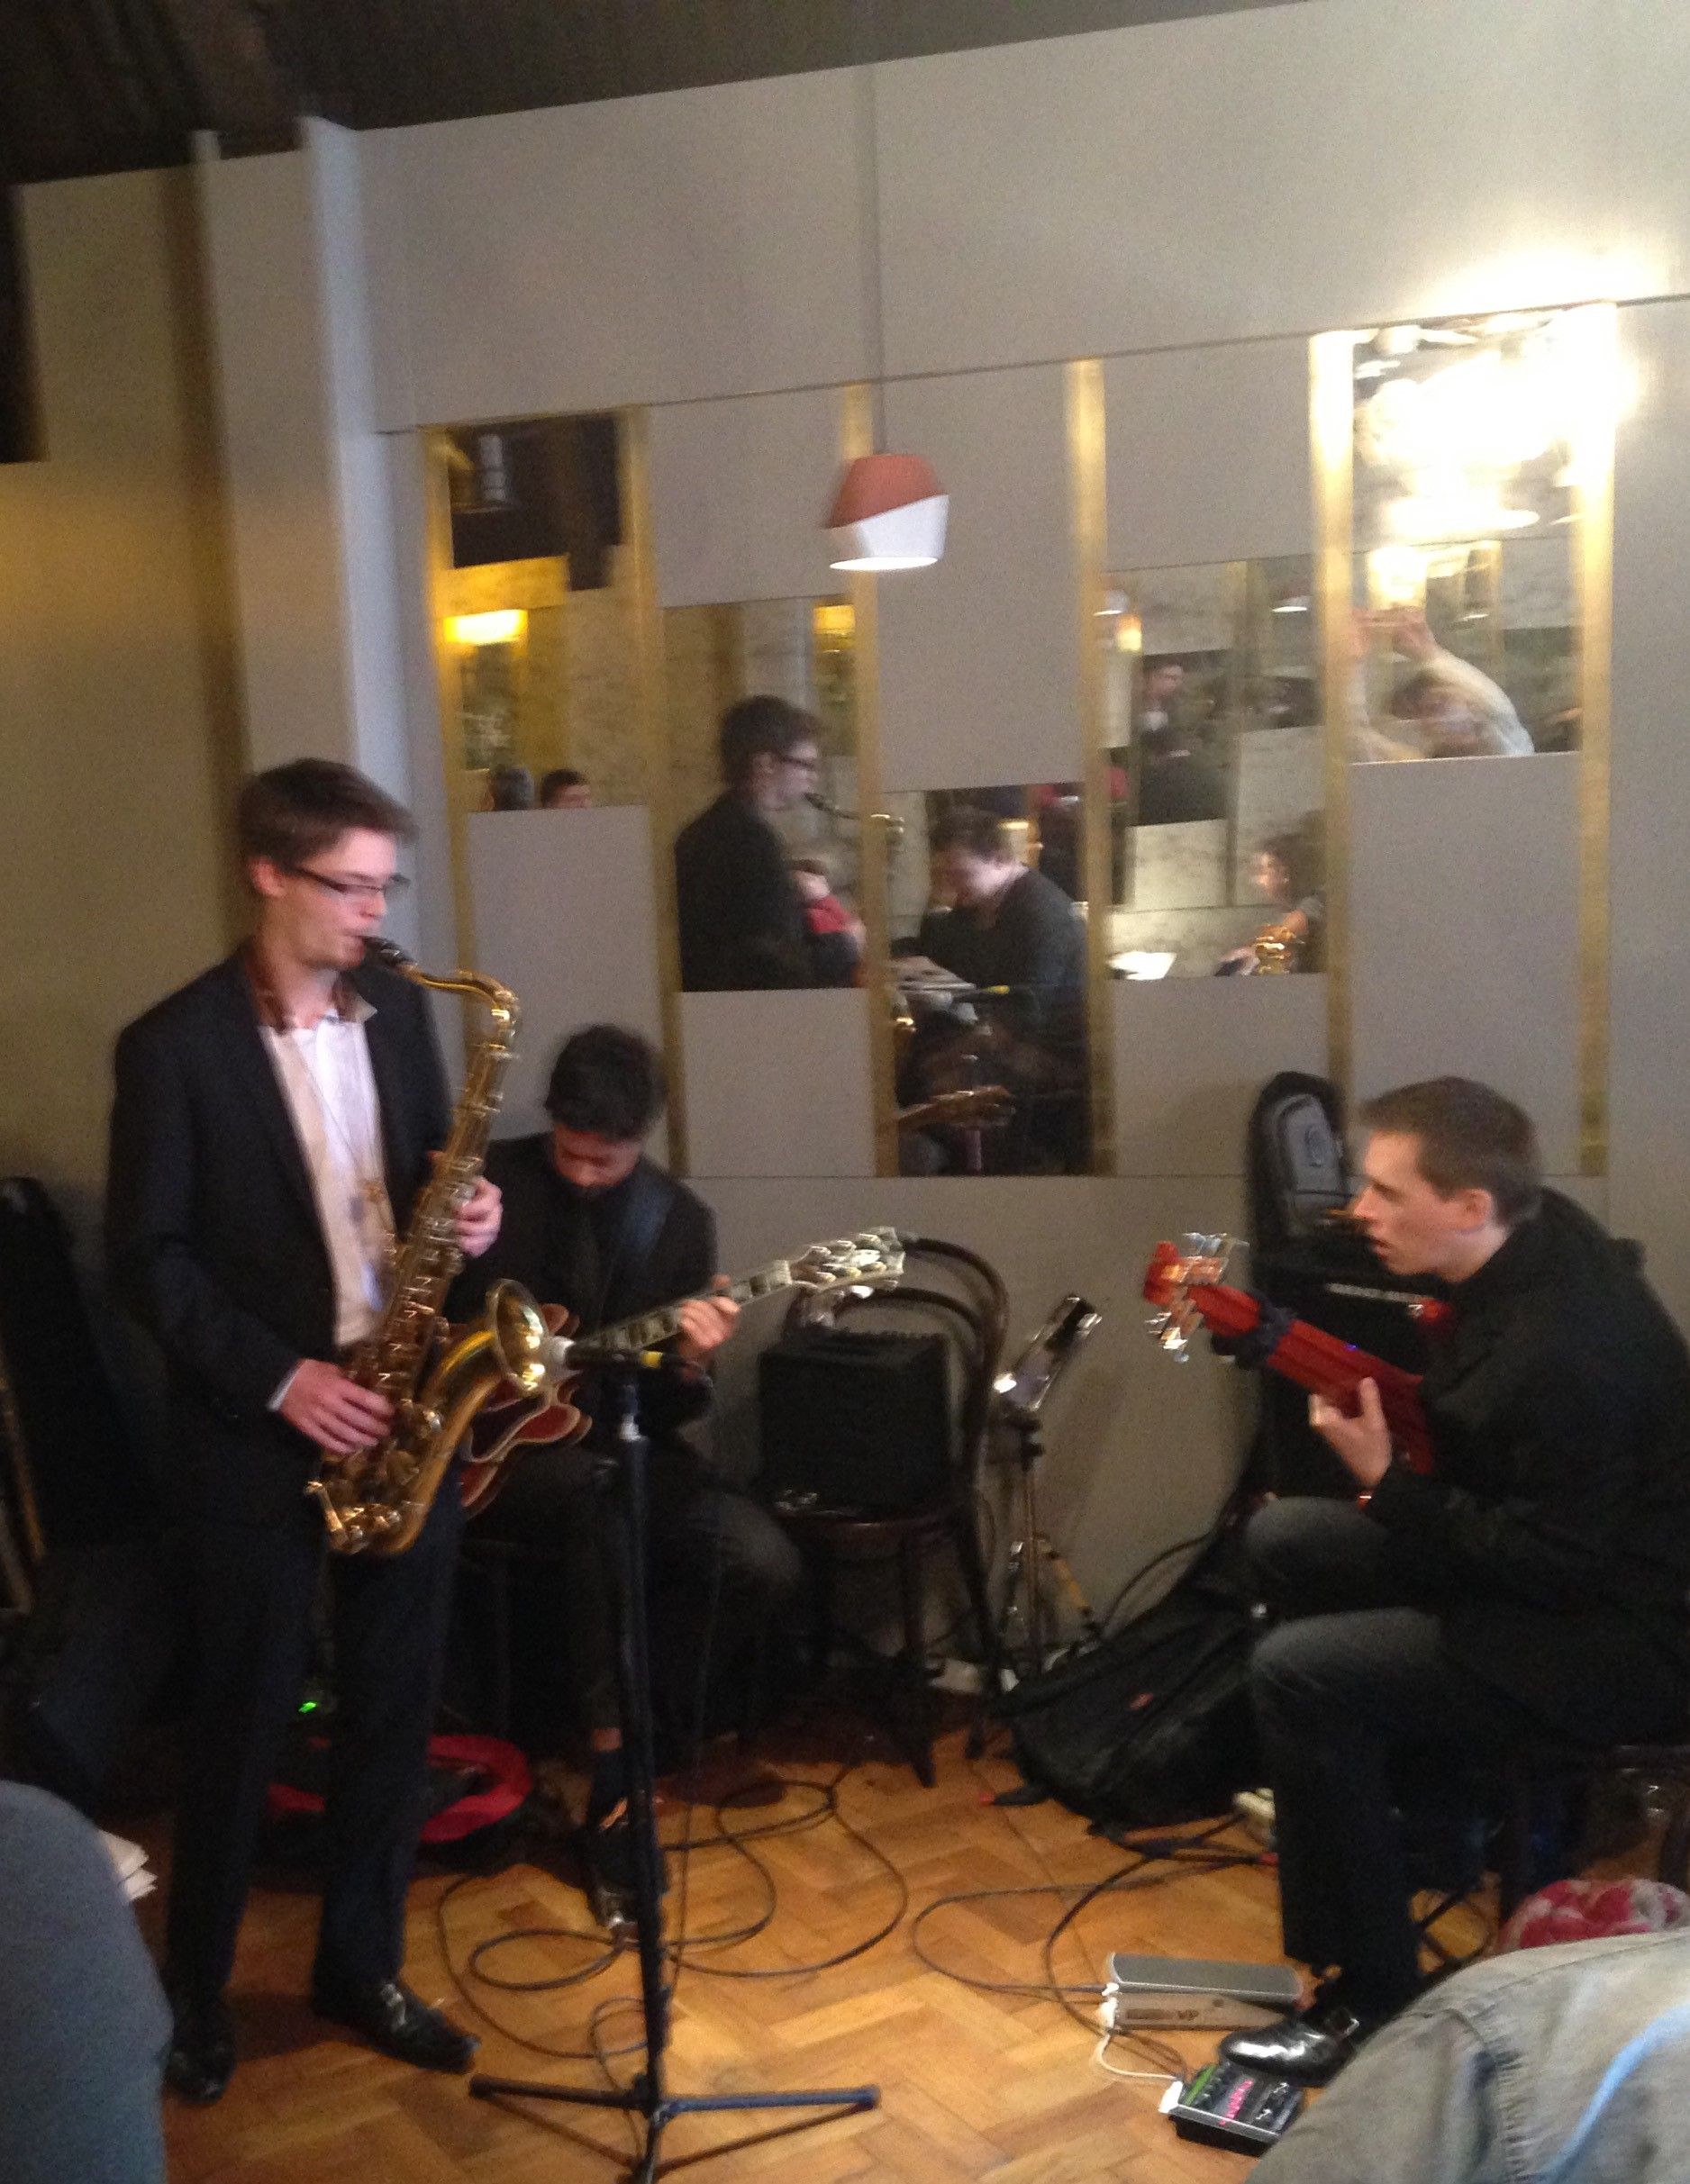 live jazz, Counter Brasserie - kenningtonrunoff.com